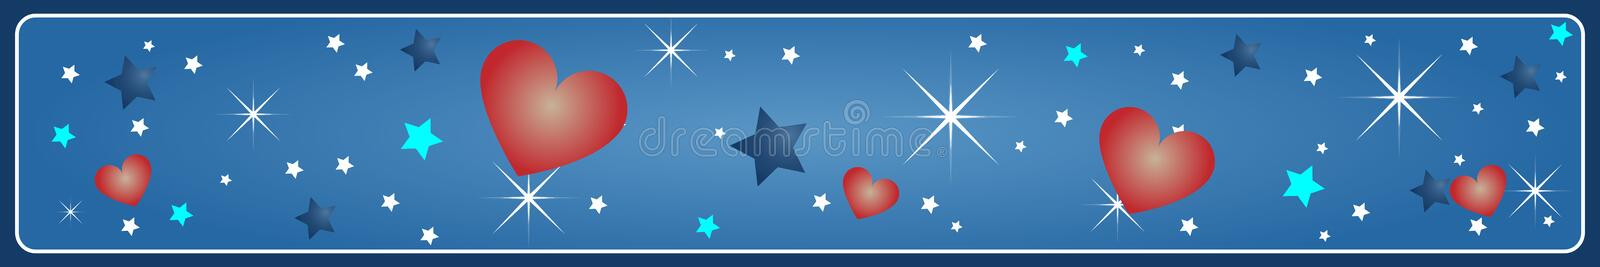 Download Valentine's Banner Royalty Free Stock Photography - Image: 12314887